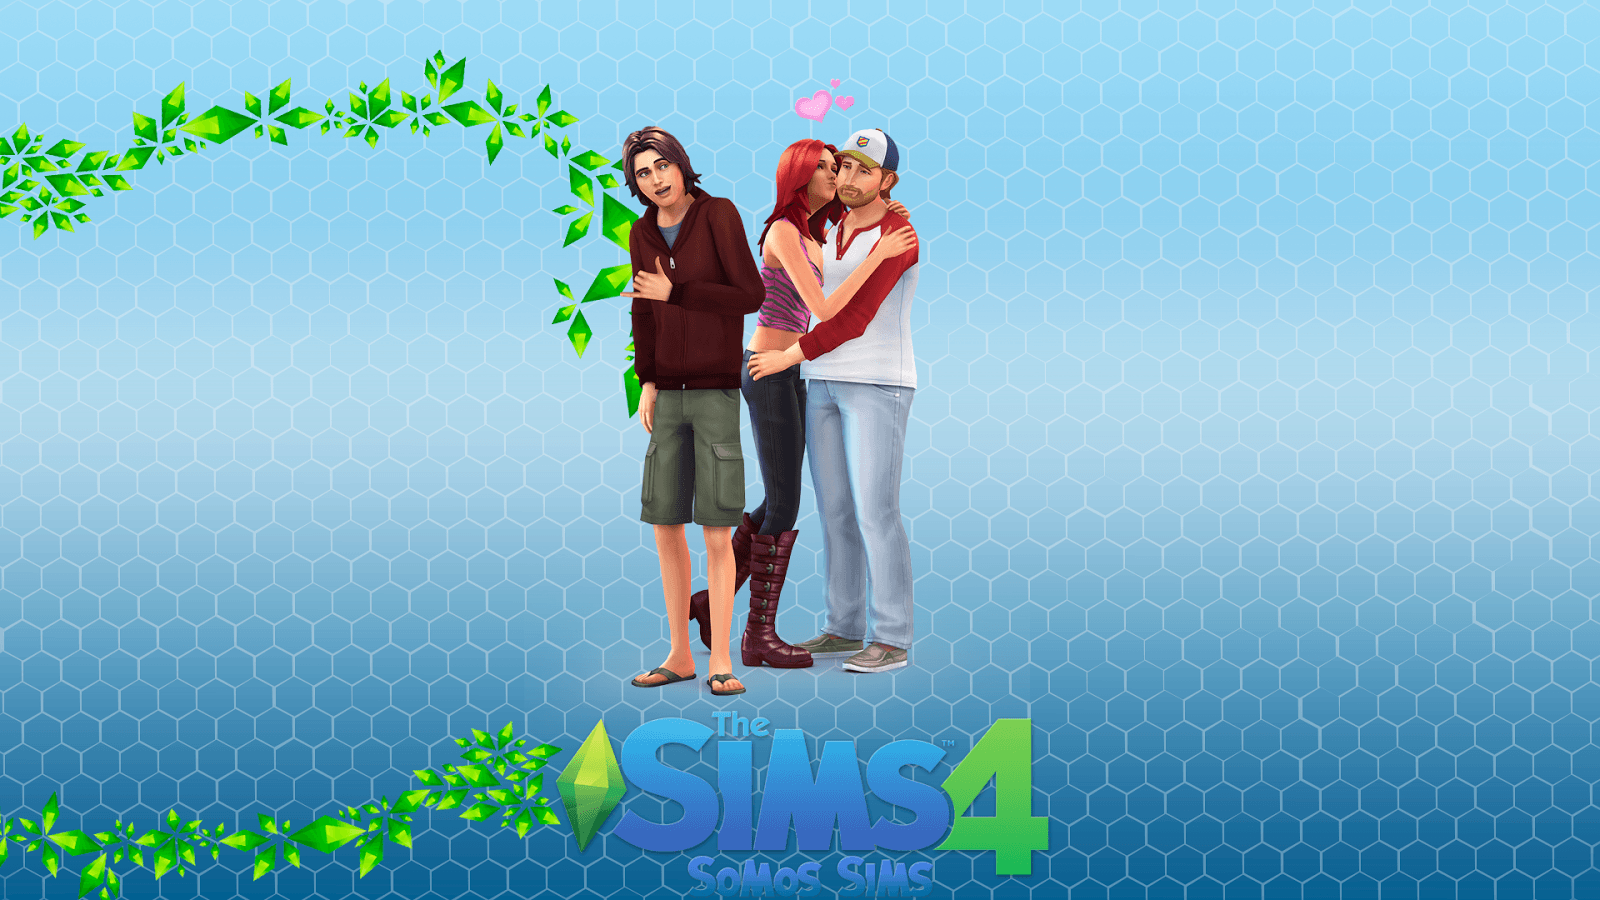 sims 4 backgrounds - photo #15